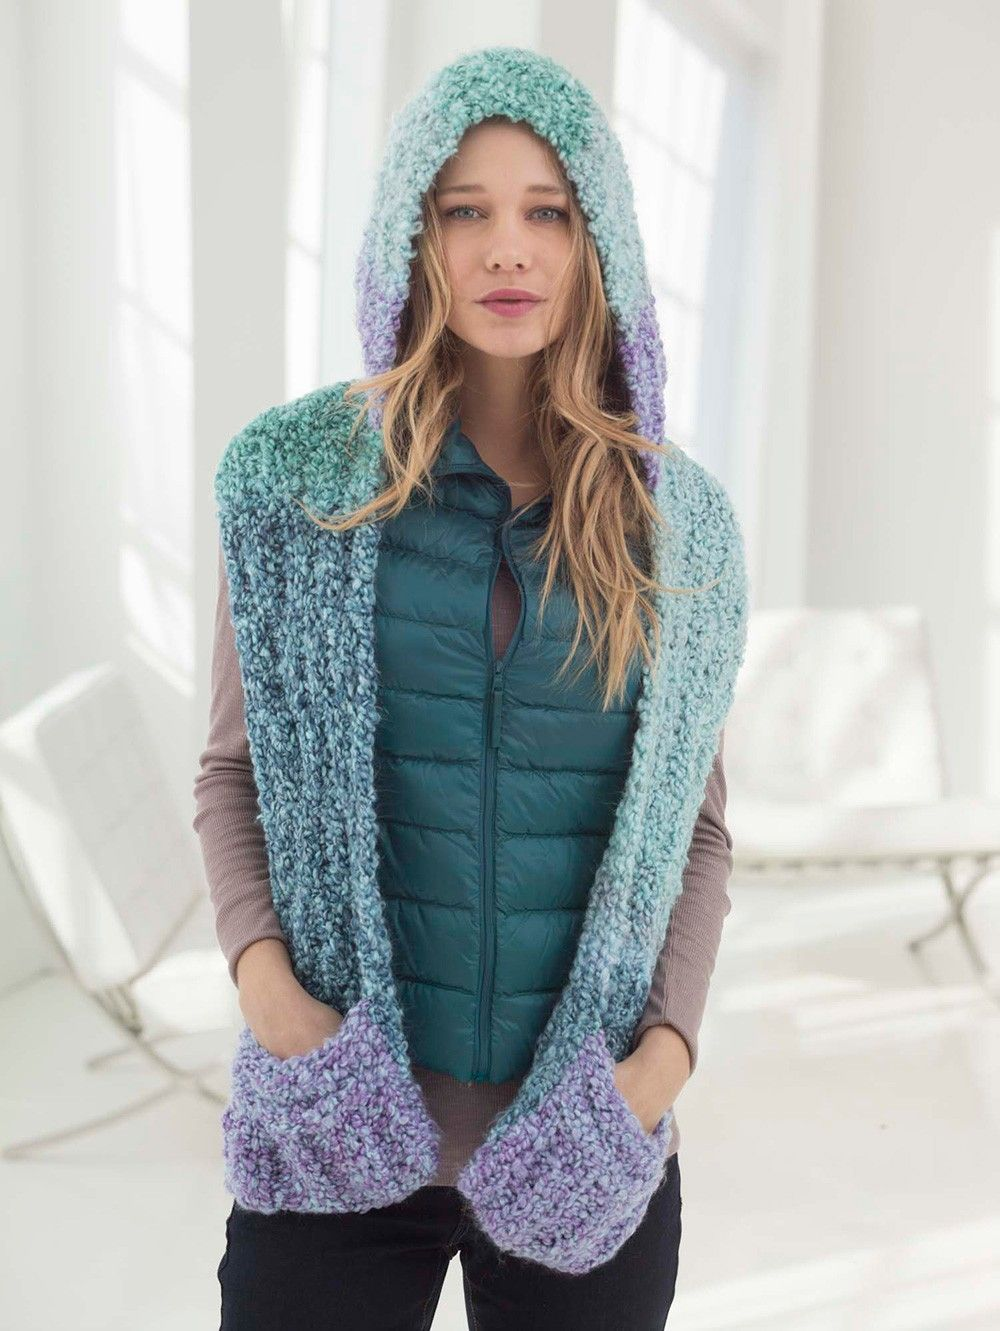 Hooded Scarf With Pockets Pattern (Knit) | knitting | Pinterest ...